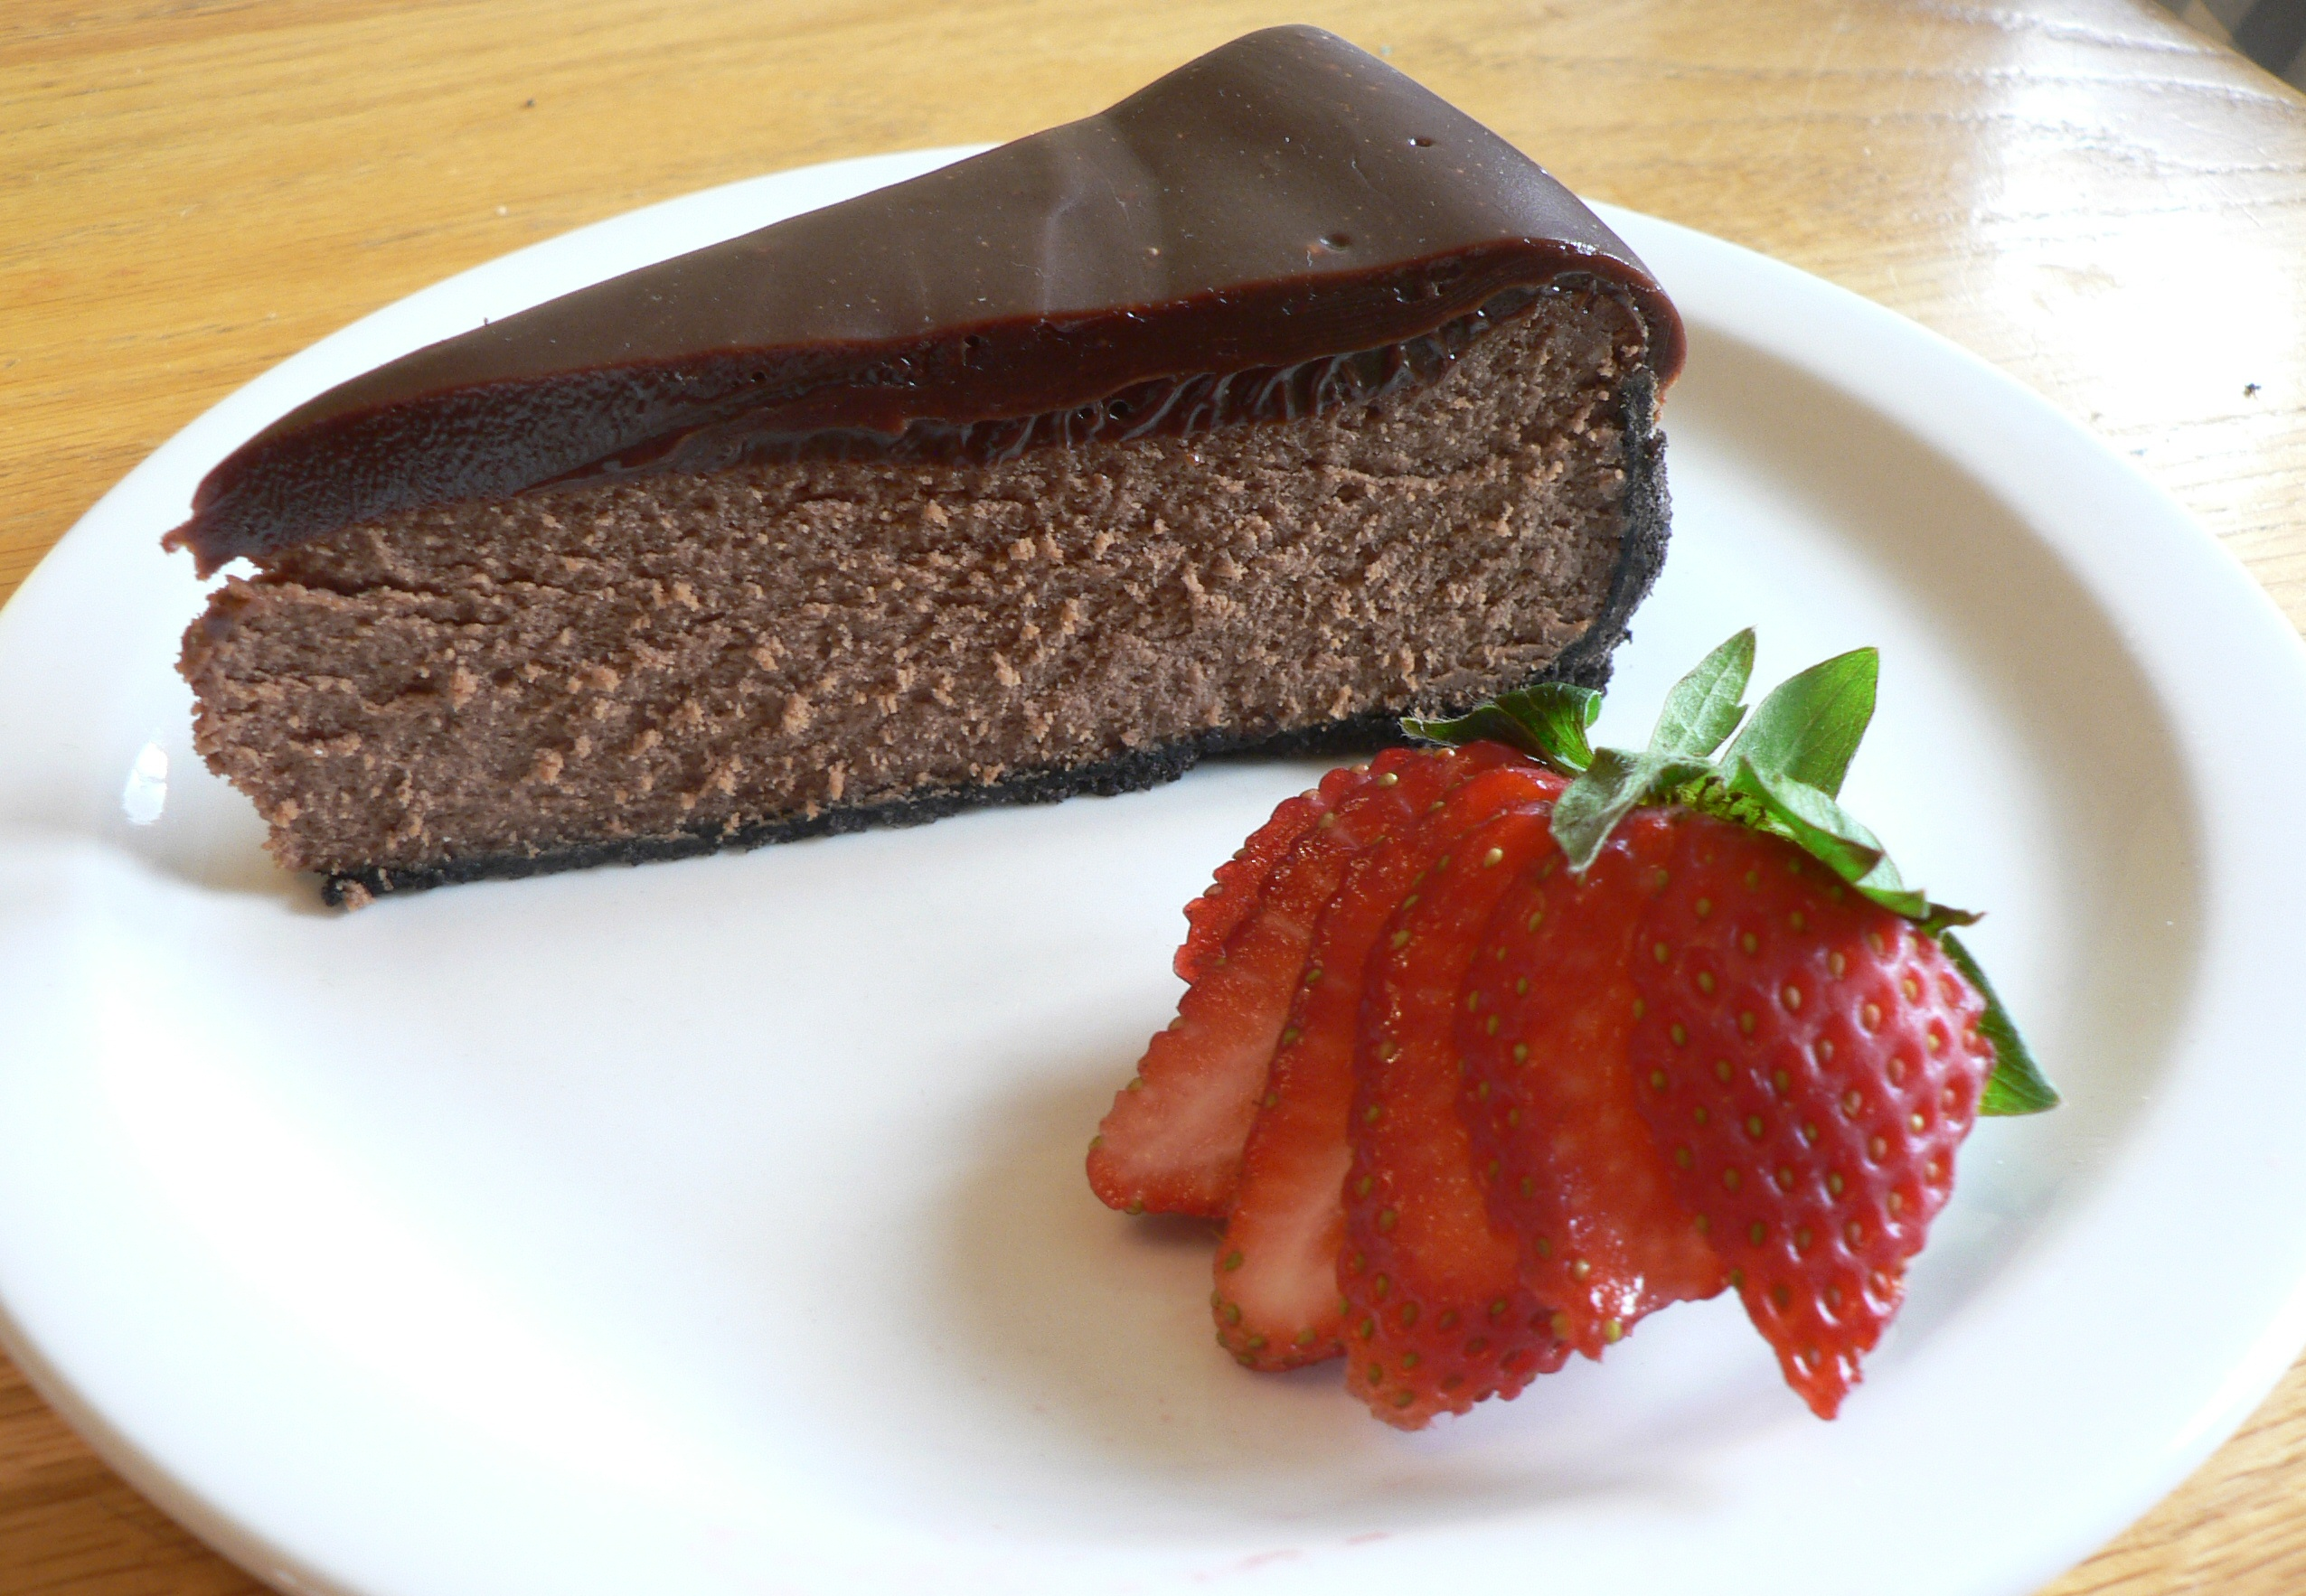 Double Chocolate Cheesecake with Chocolate Ganache